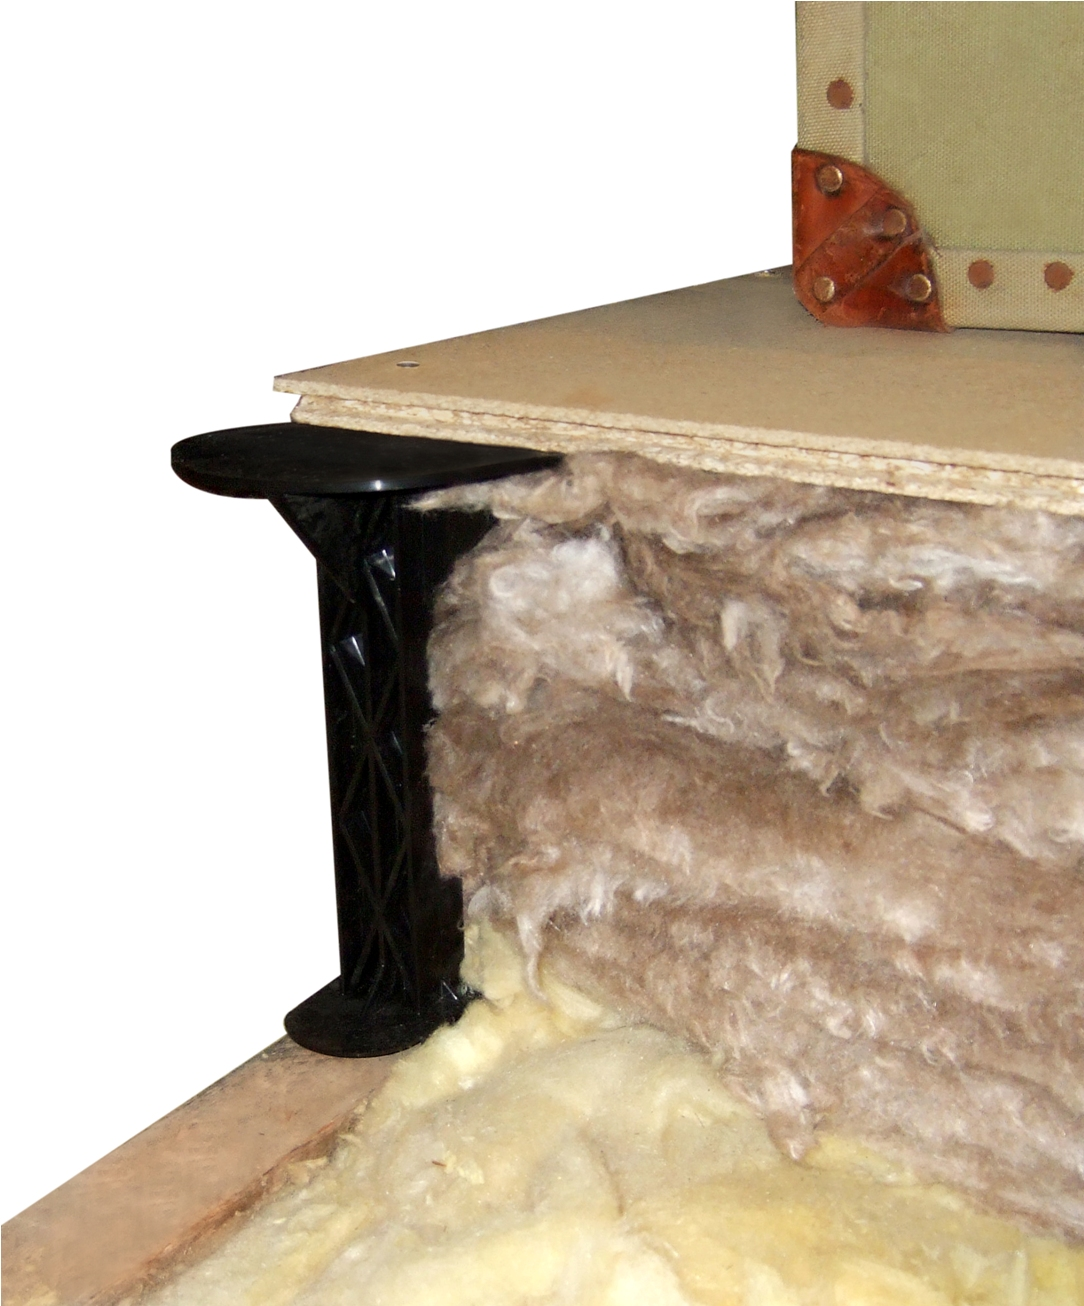 loft stilts. Loft Storage Stilts Enable You To Store Belongings On Top Of 270mm Thick Insulation Without Compressing It. O